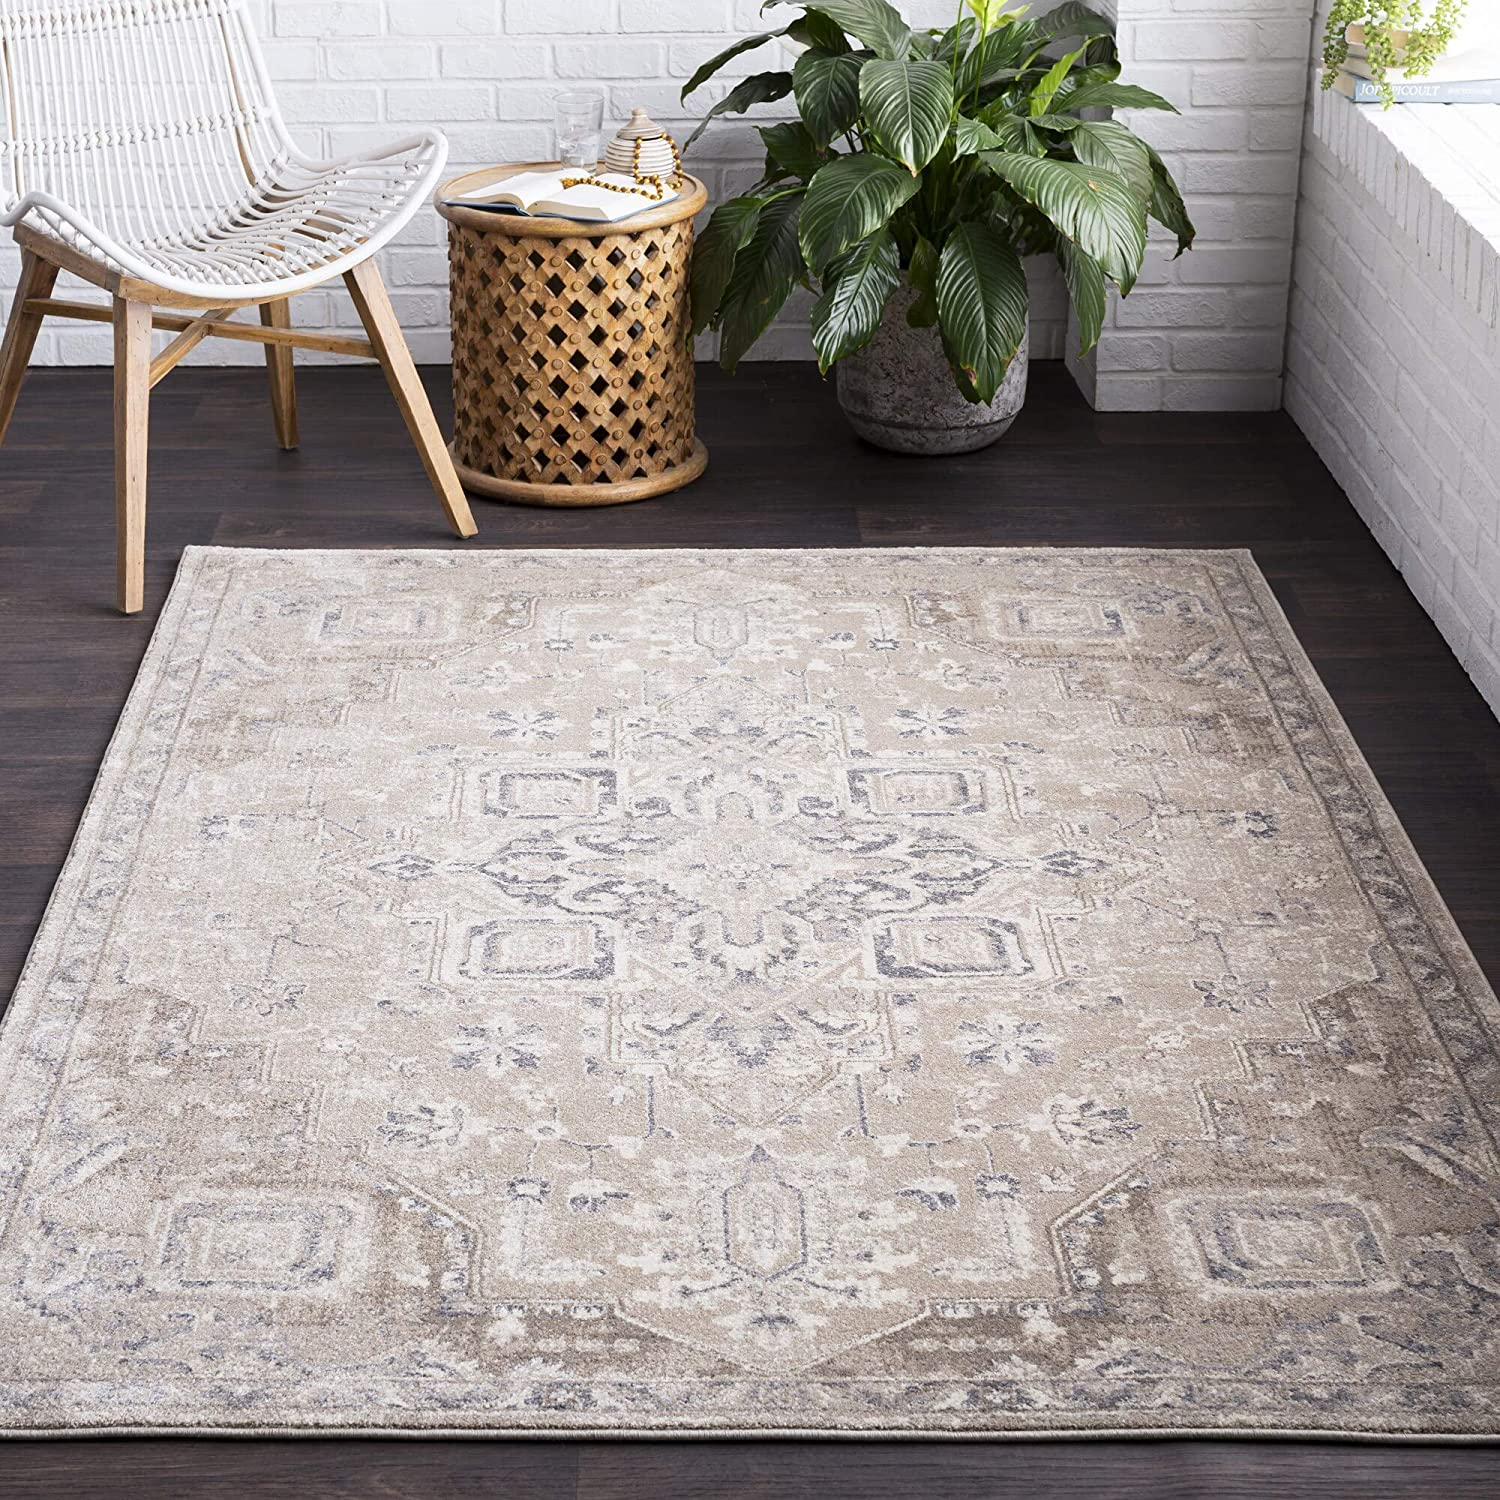 "MISC Classic Oriental Area Rug 2'7"" X 7'7"" Runner Brown Polypropylene Synthetic Latex Free Pet Friendly Stain Resistant"